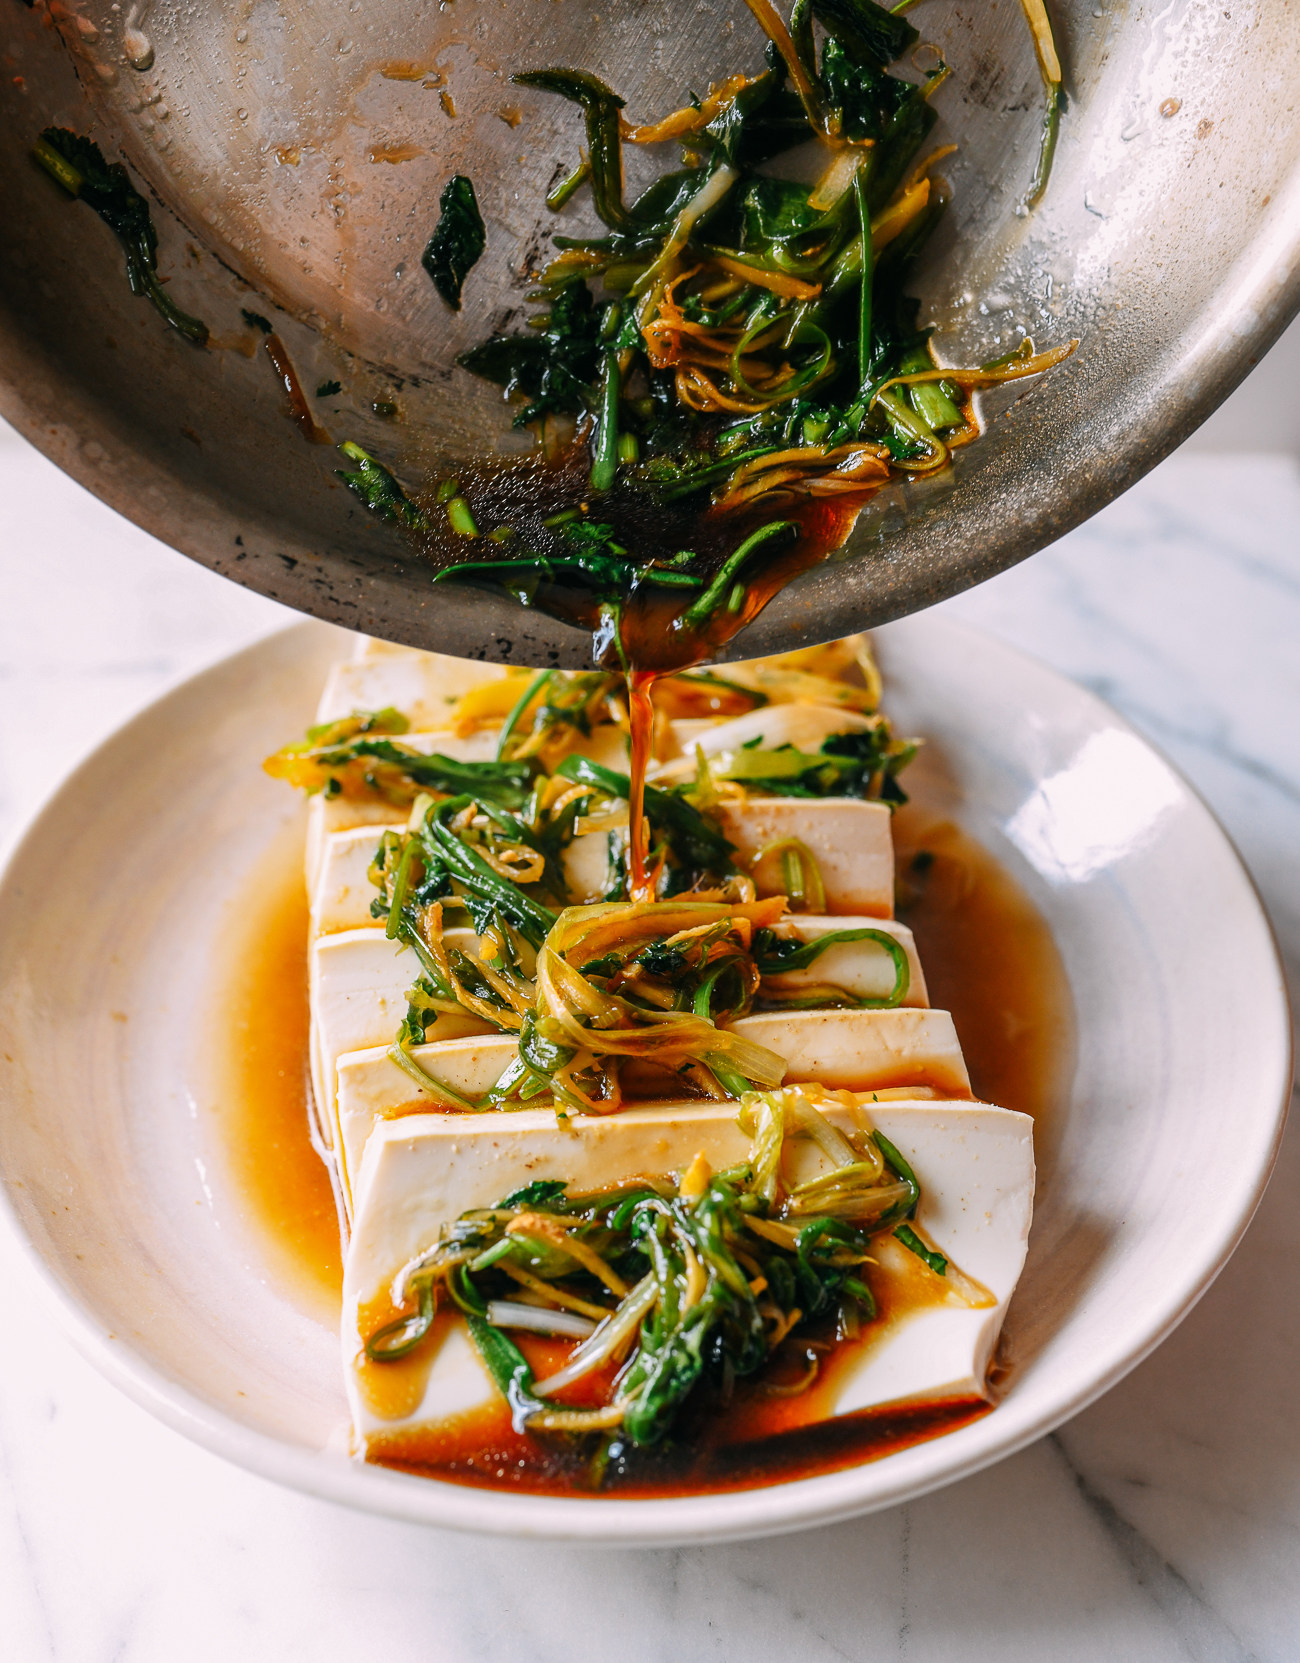 Pouring sauce over tofu